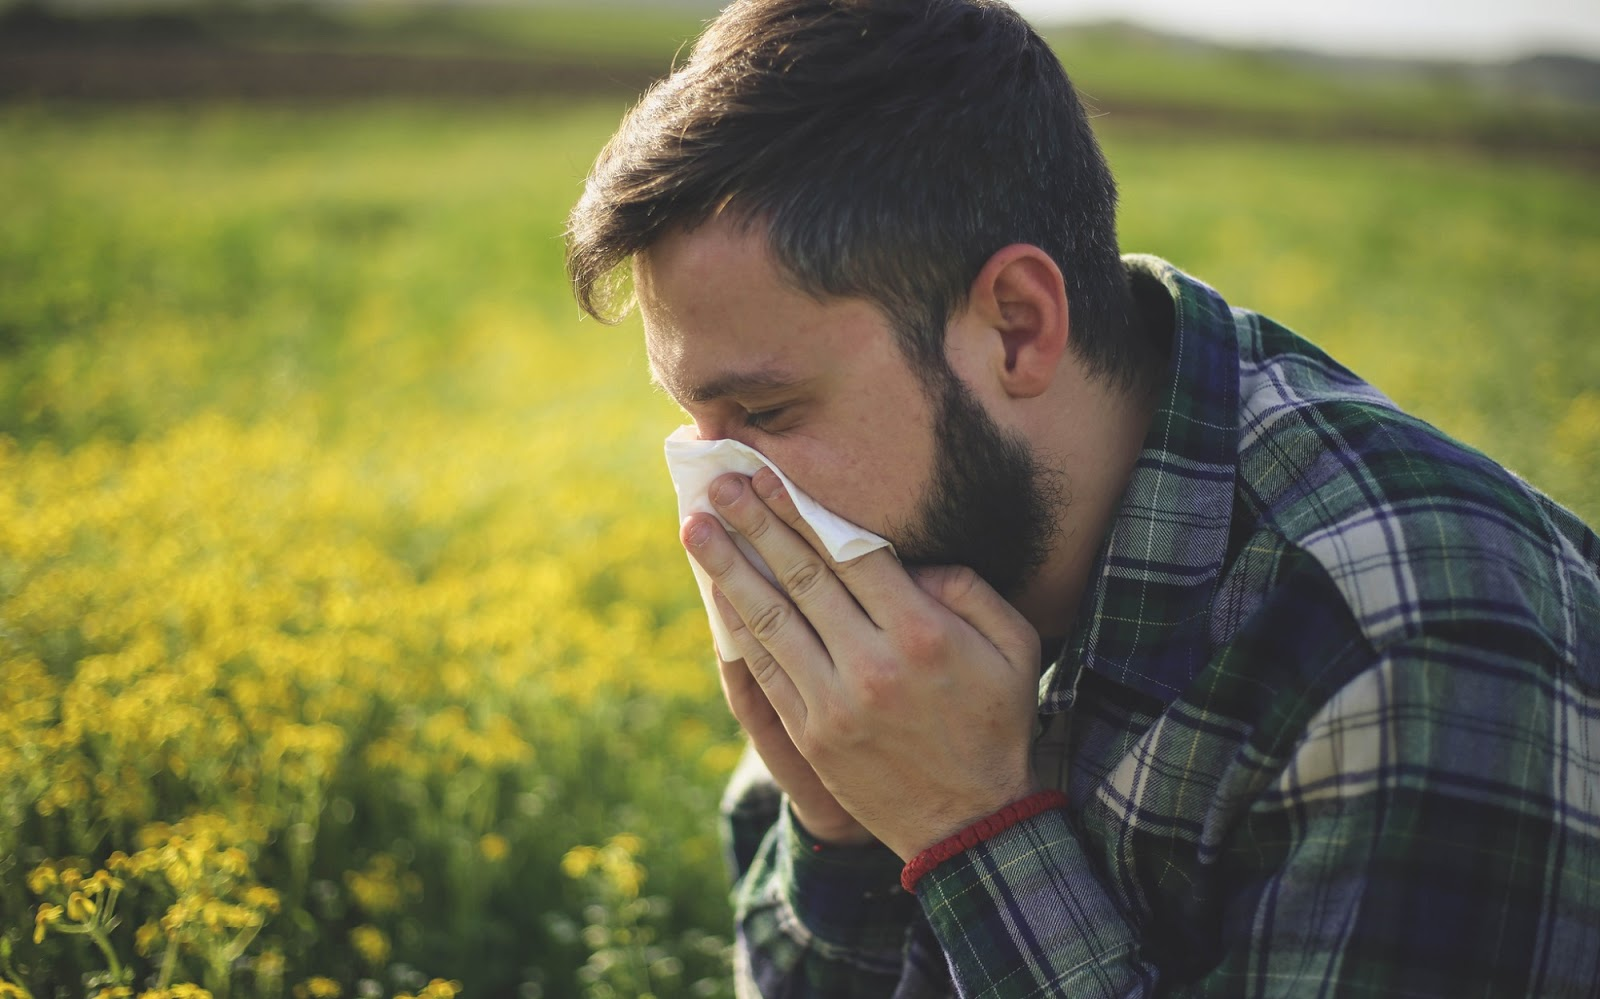 What does hay fever feel like?